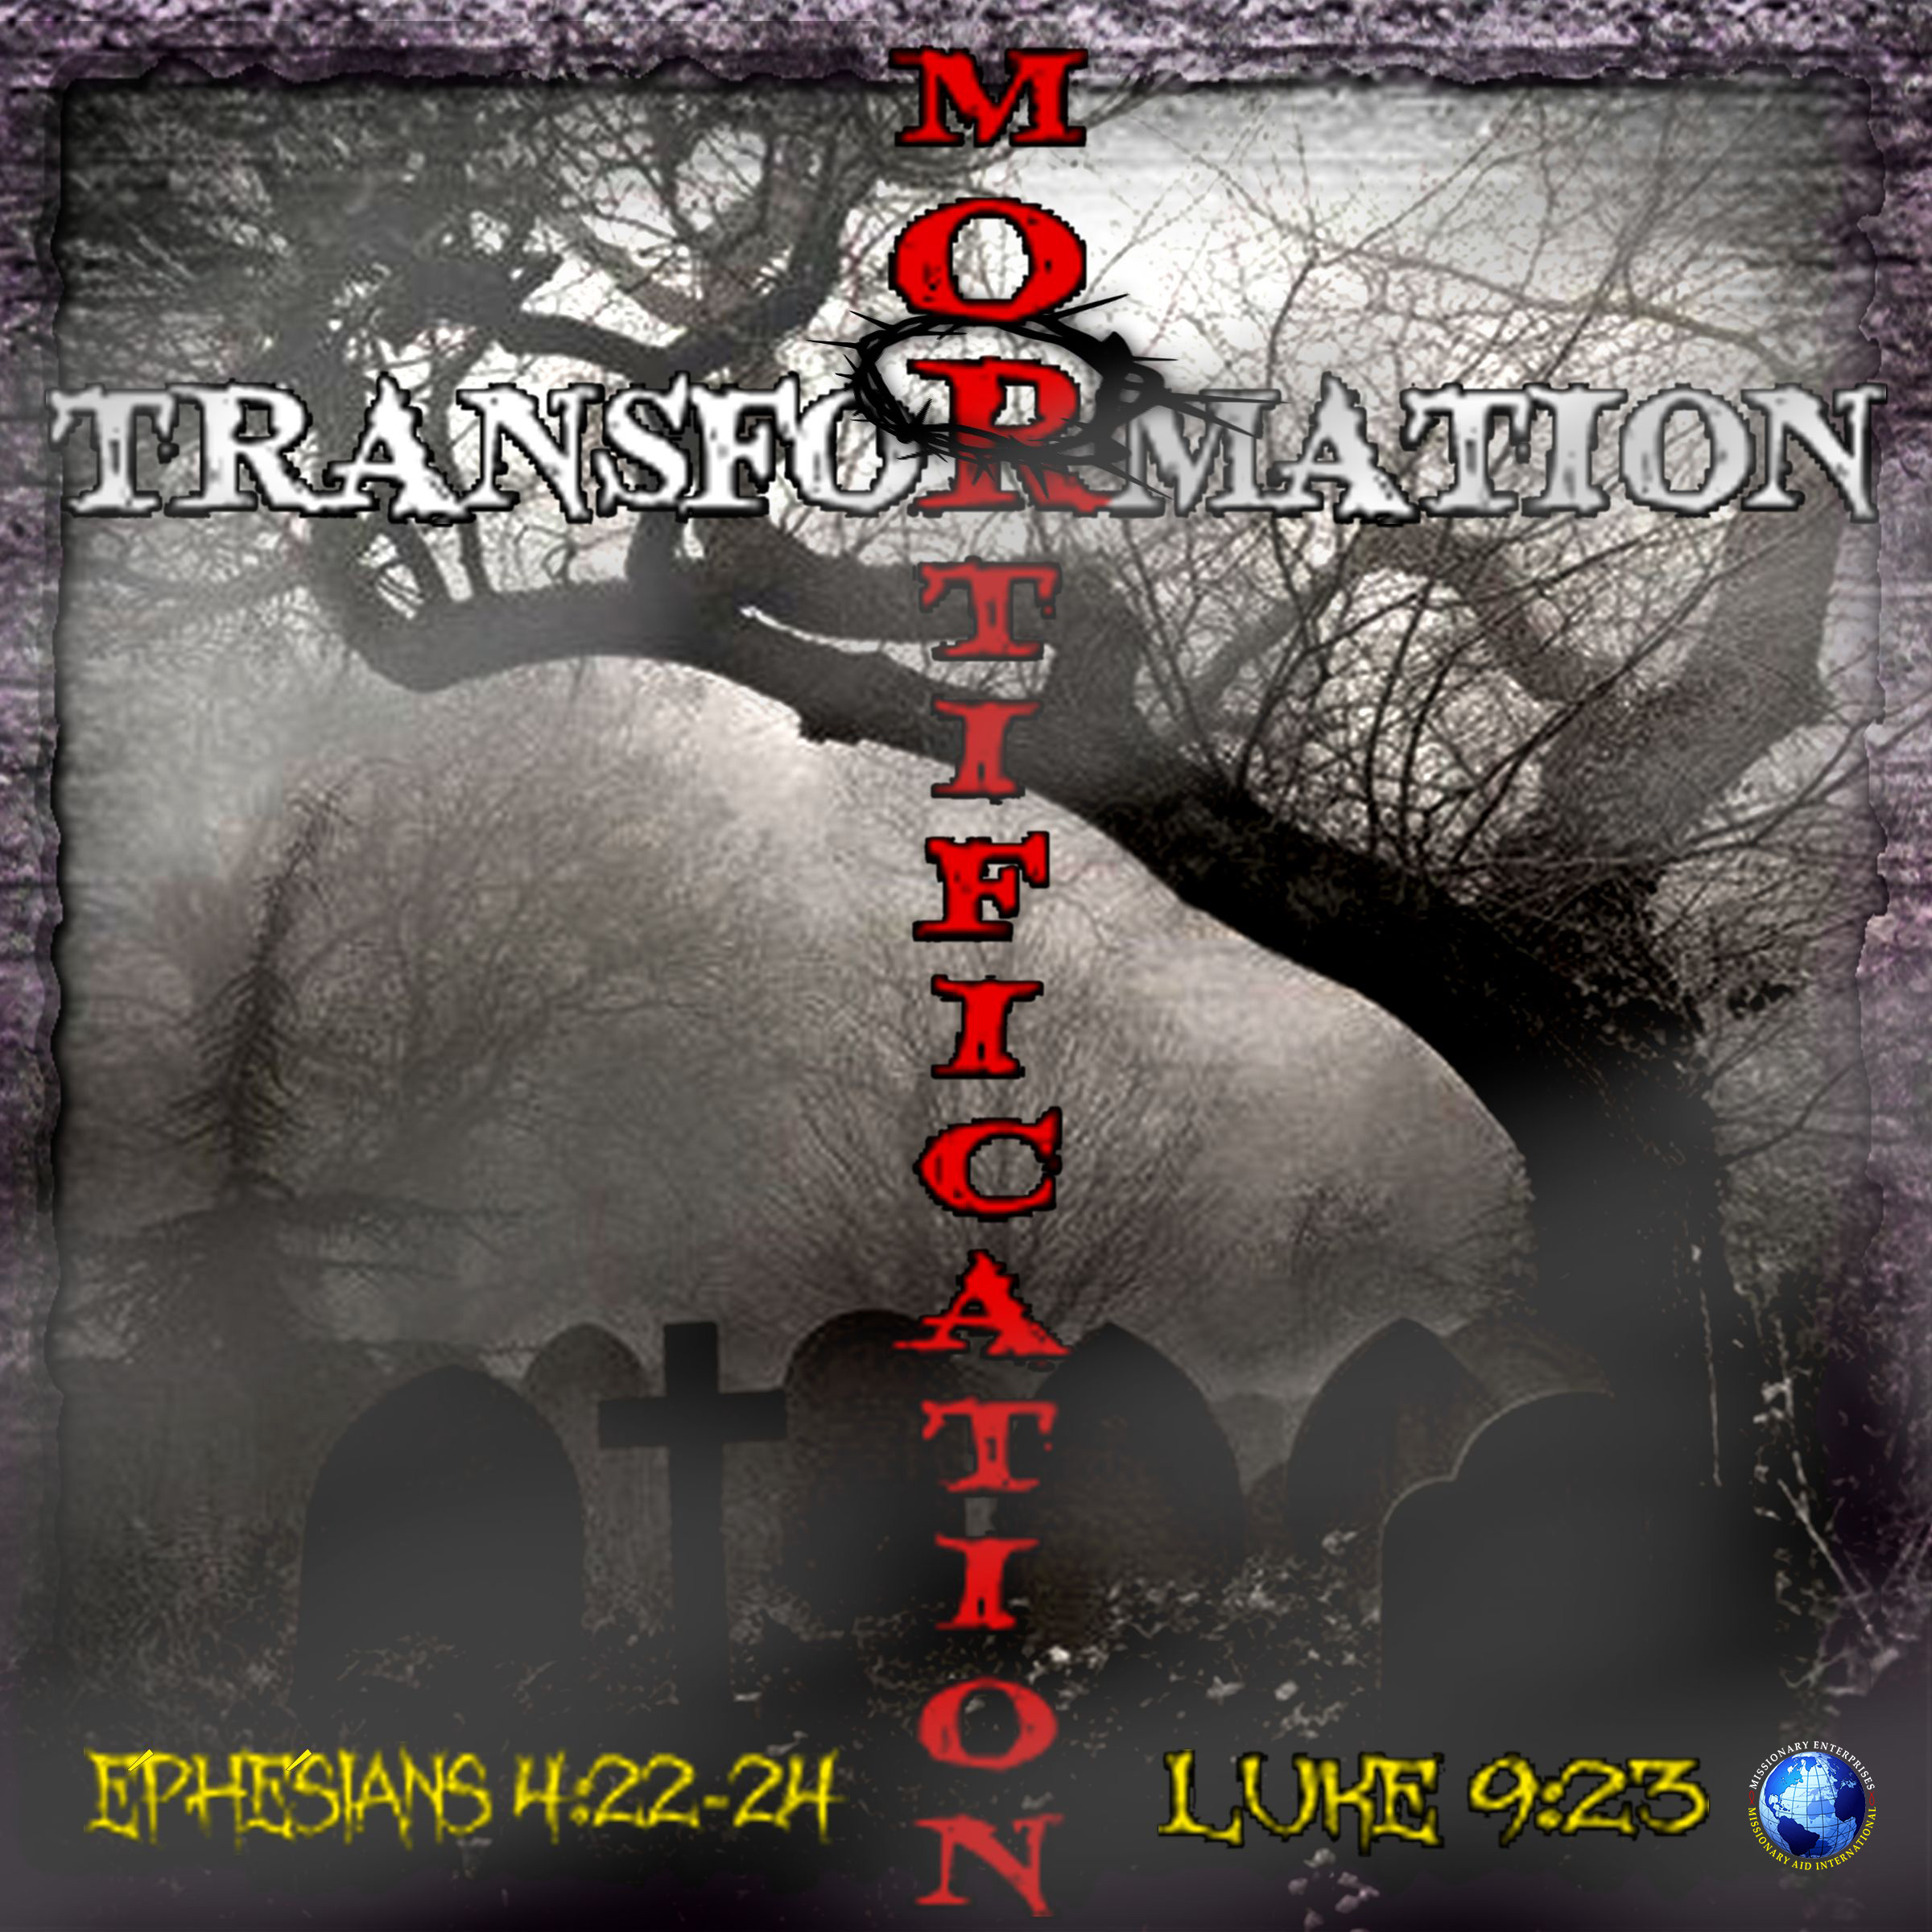 Mortification/Transformation